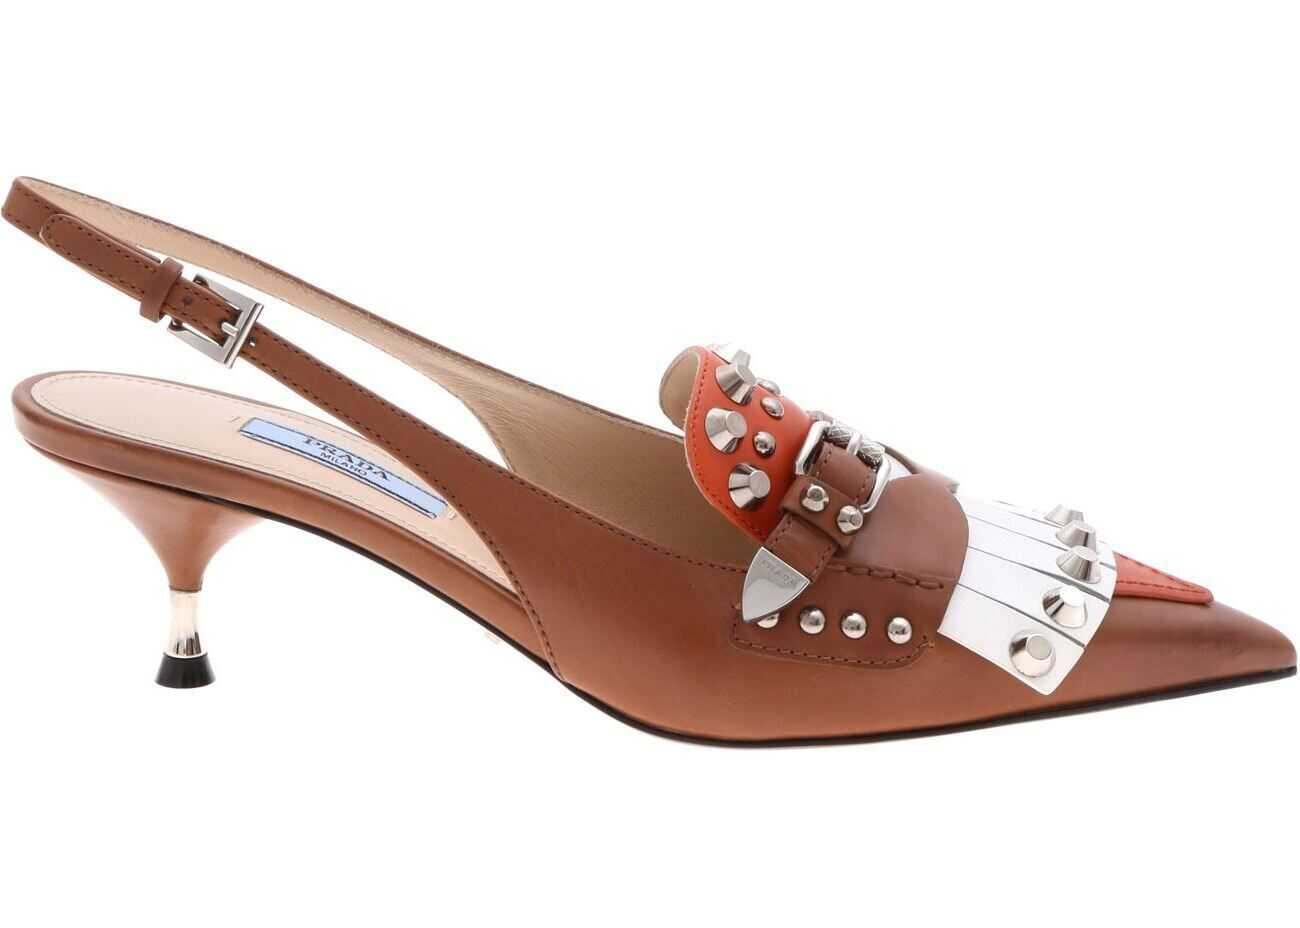 Prada Slingback In Brown And Orange Leather With Studs Brown